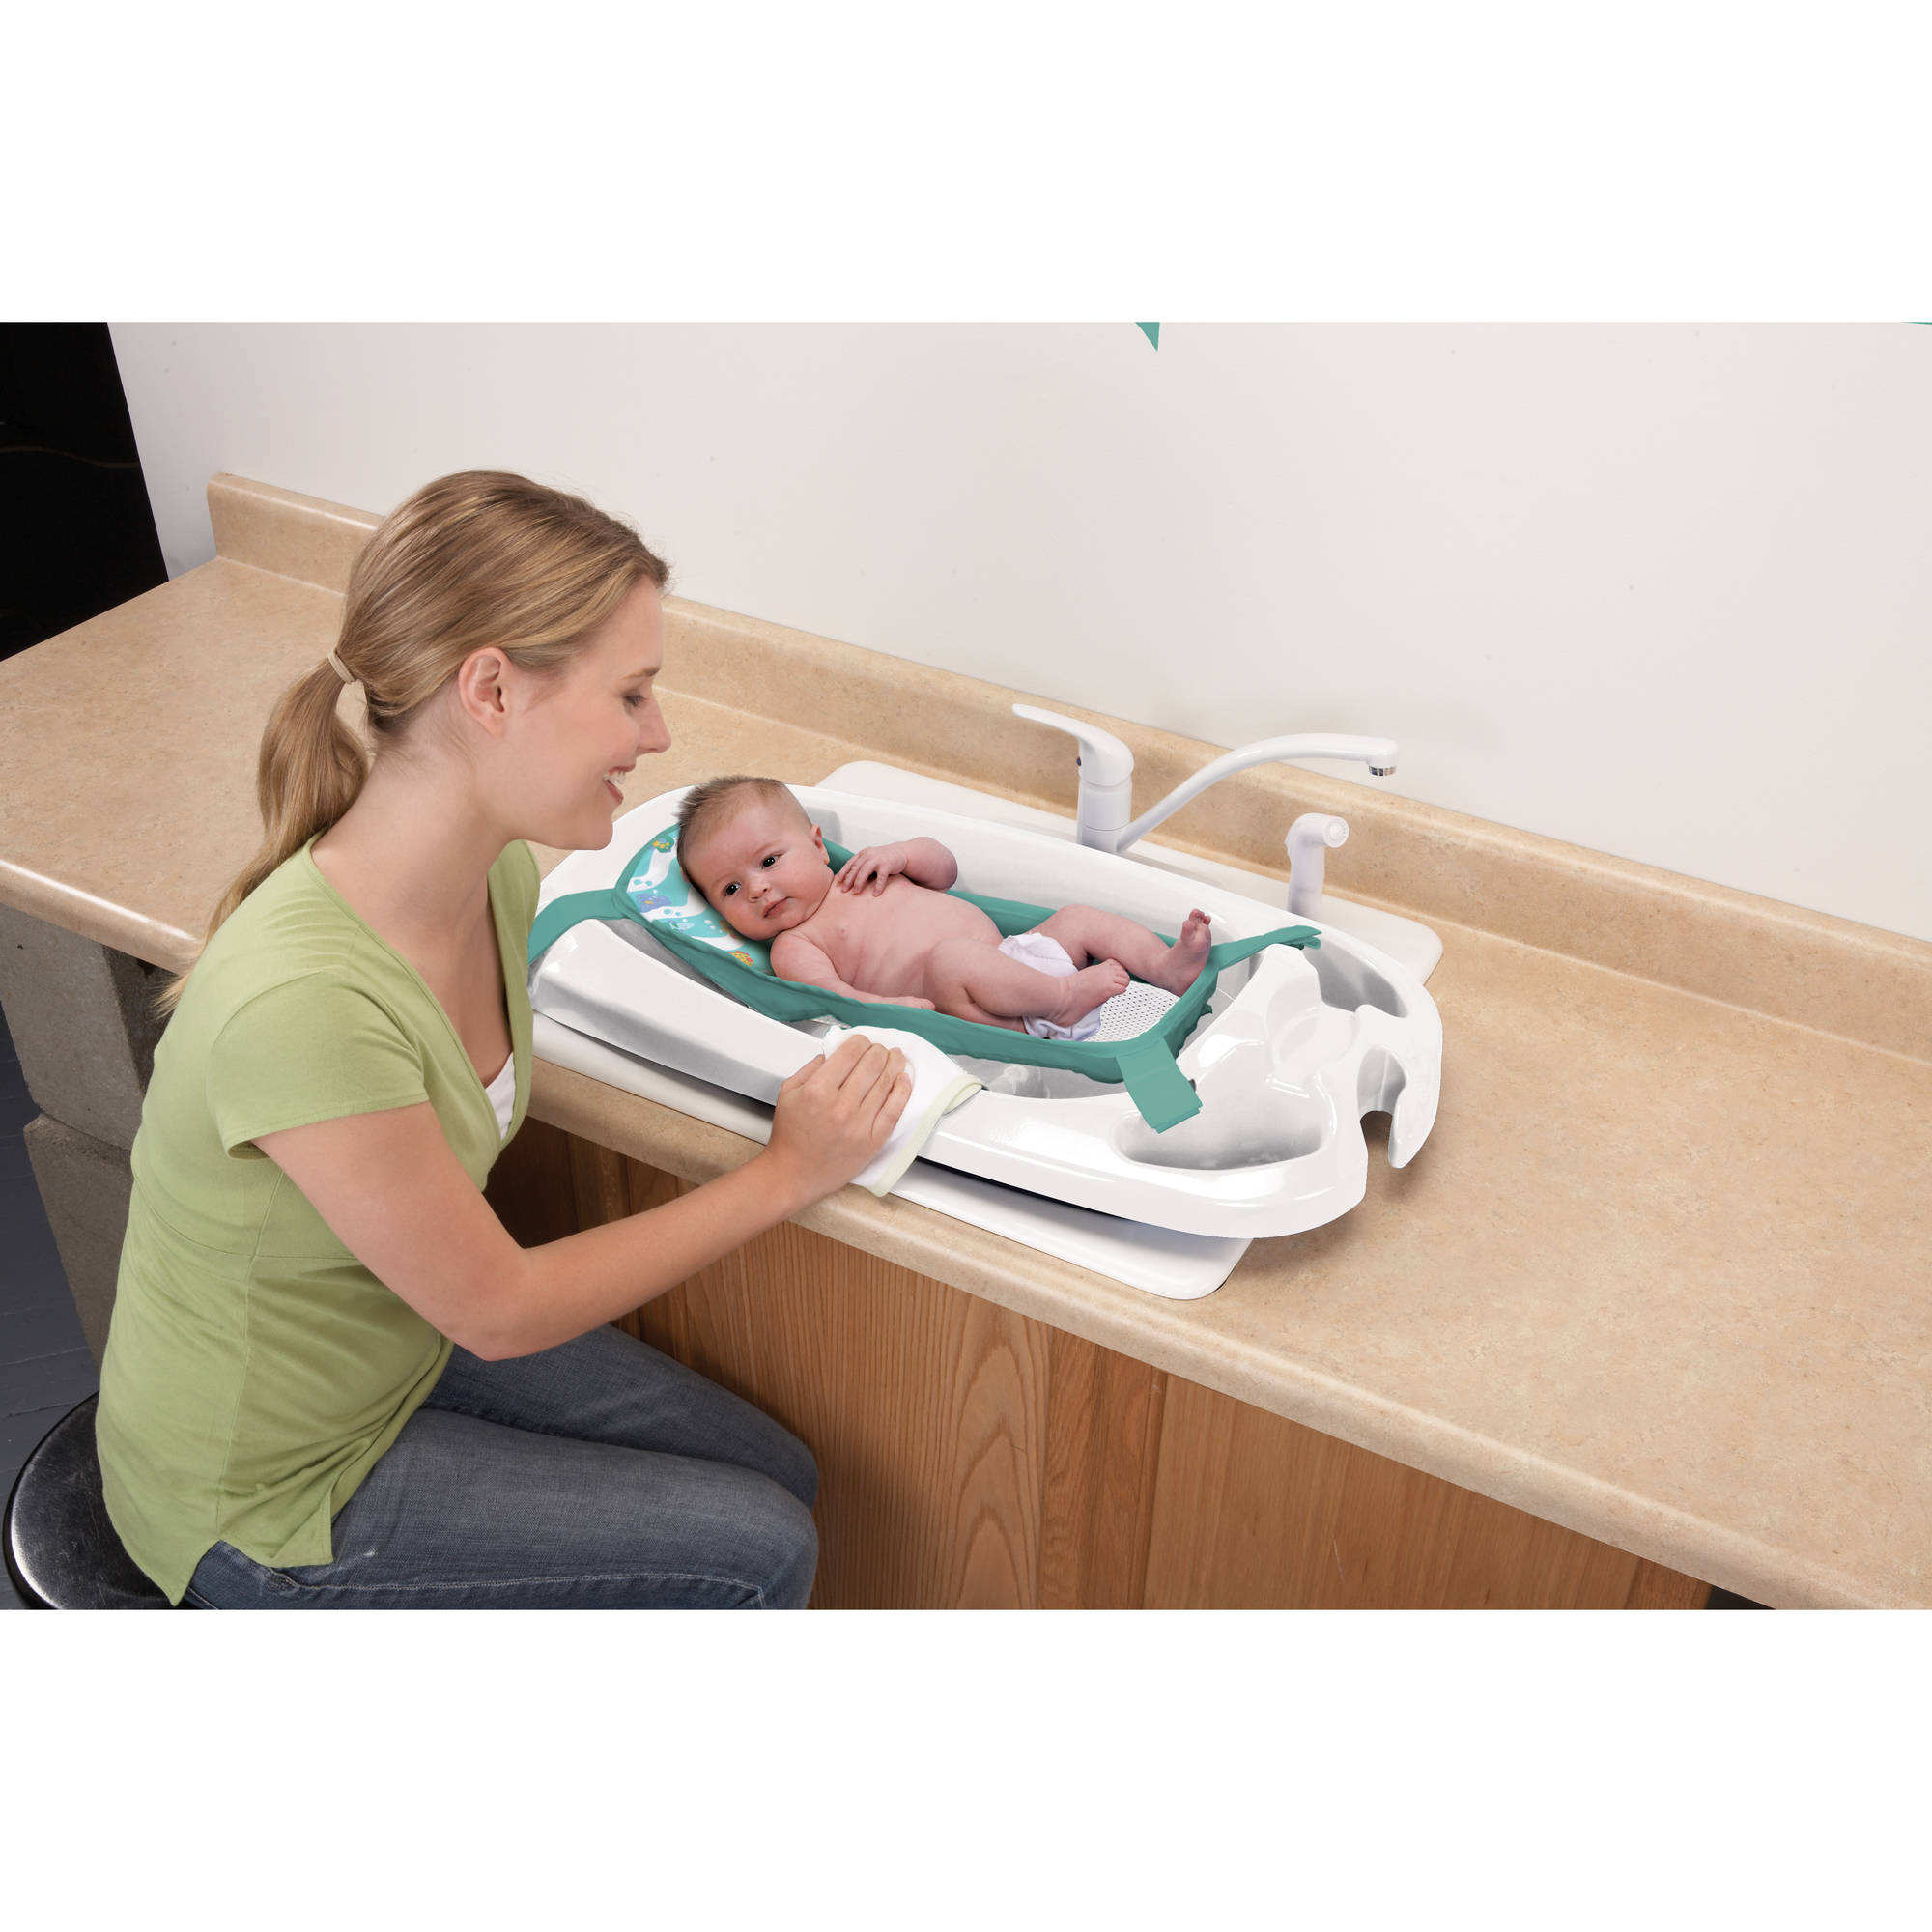 Safety 1st - Deluxe Infant to Toddler Bath Center